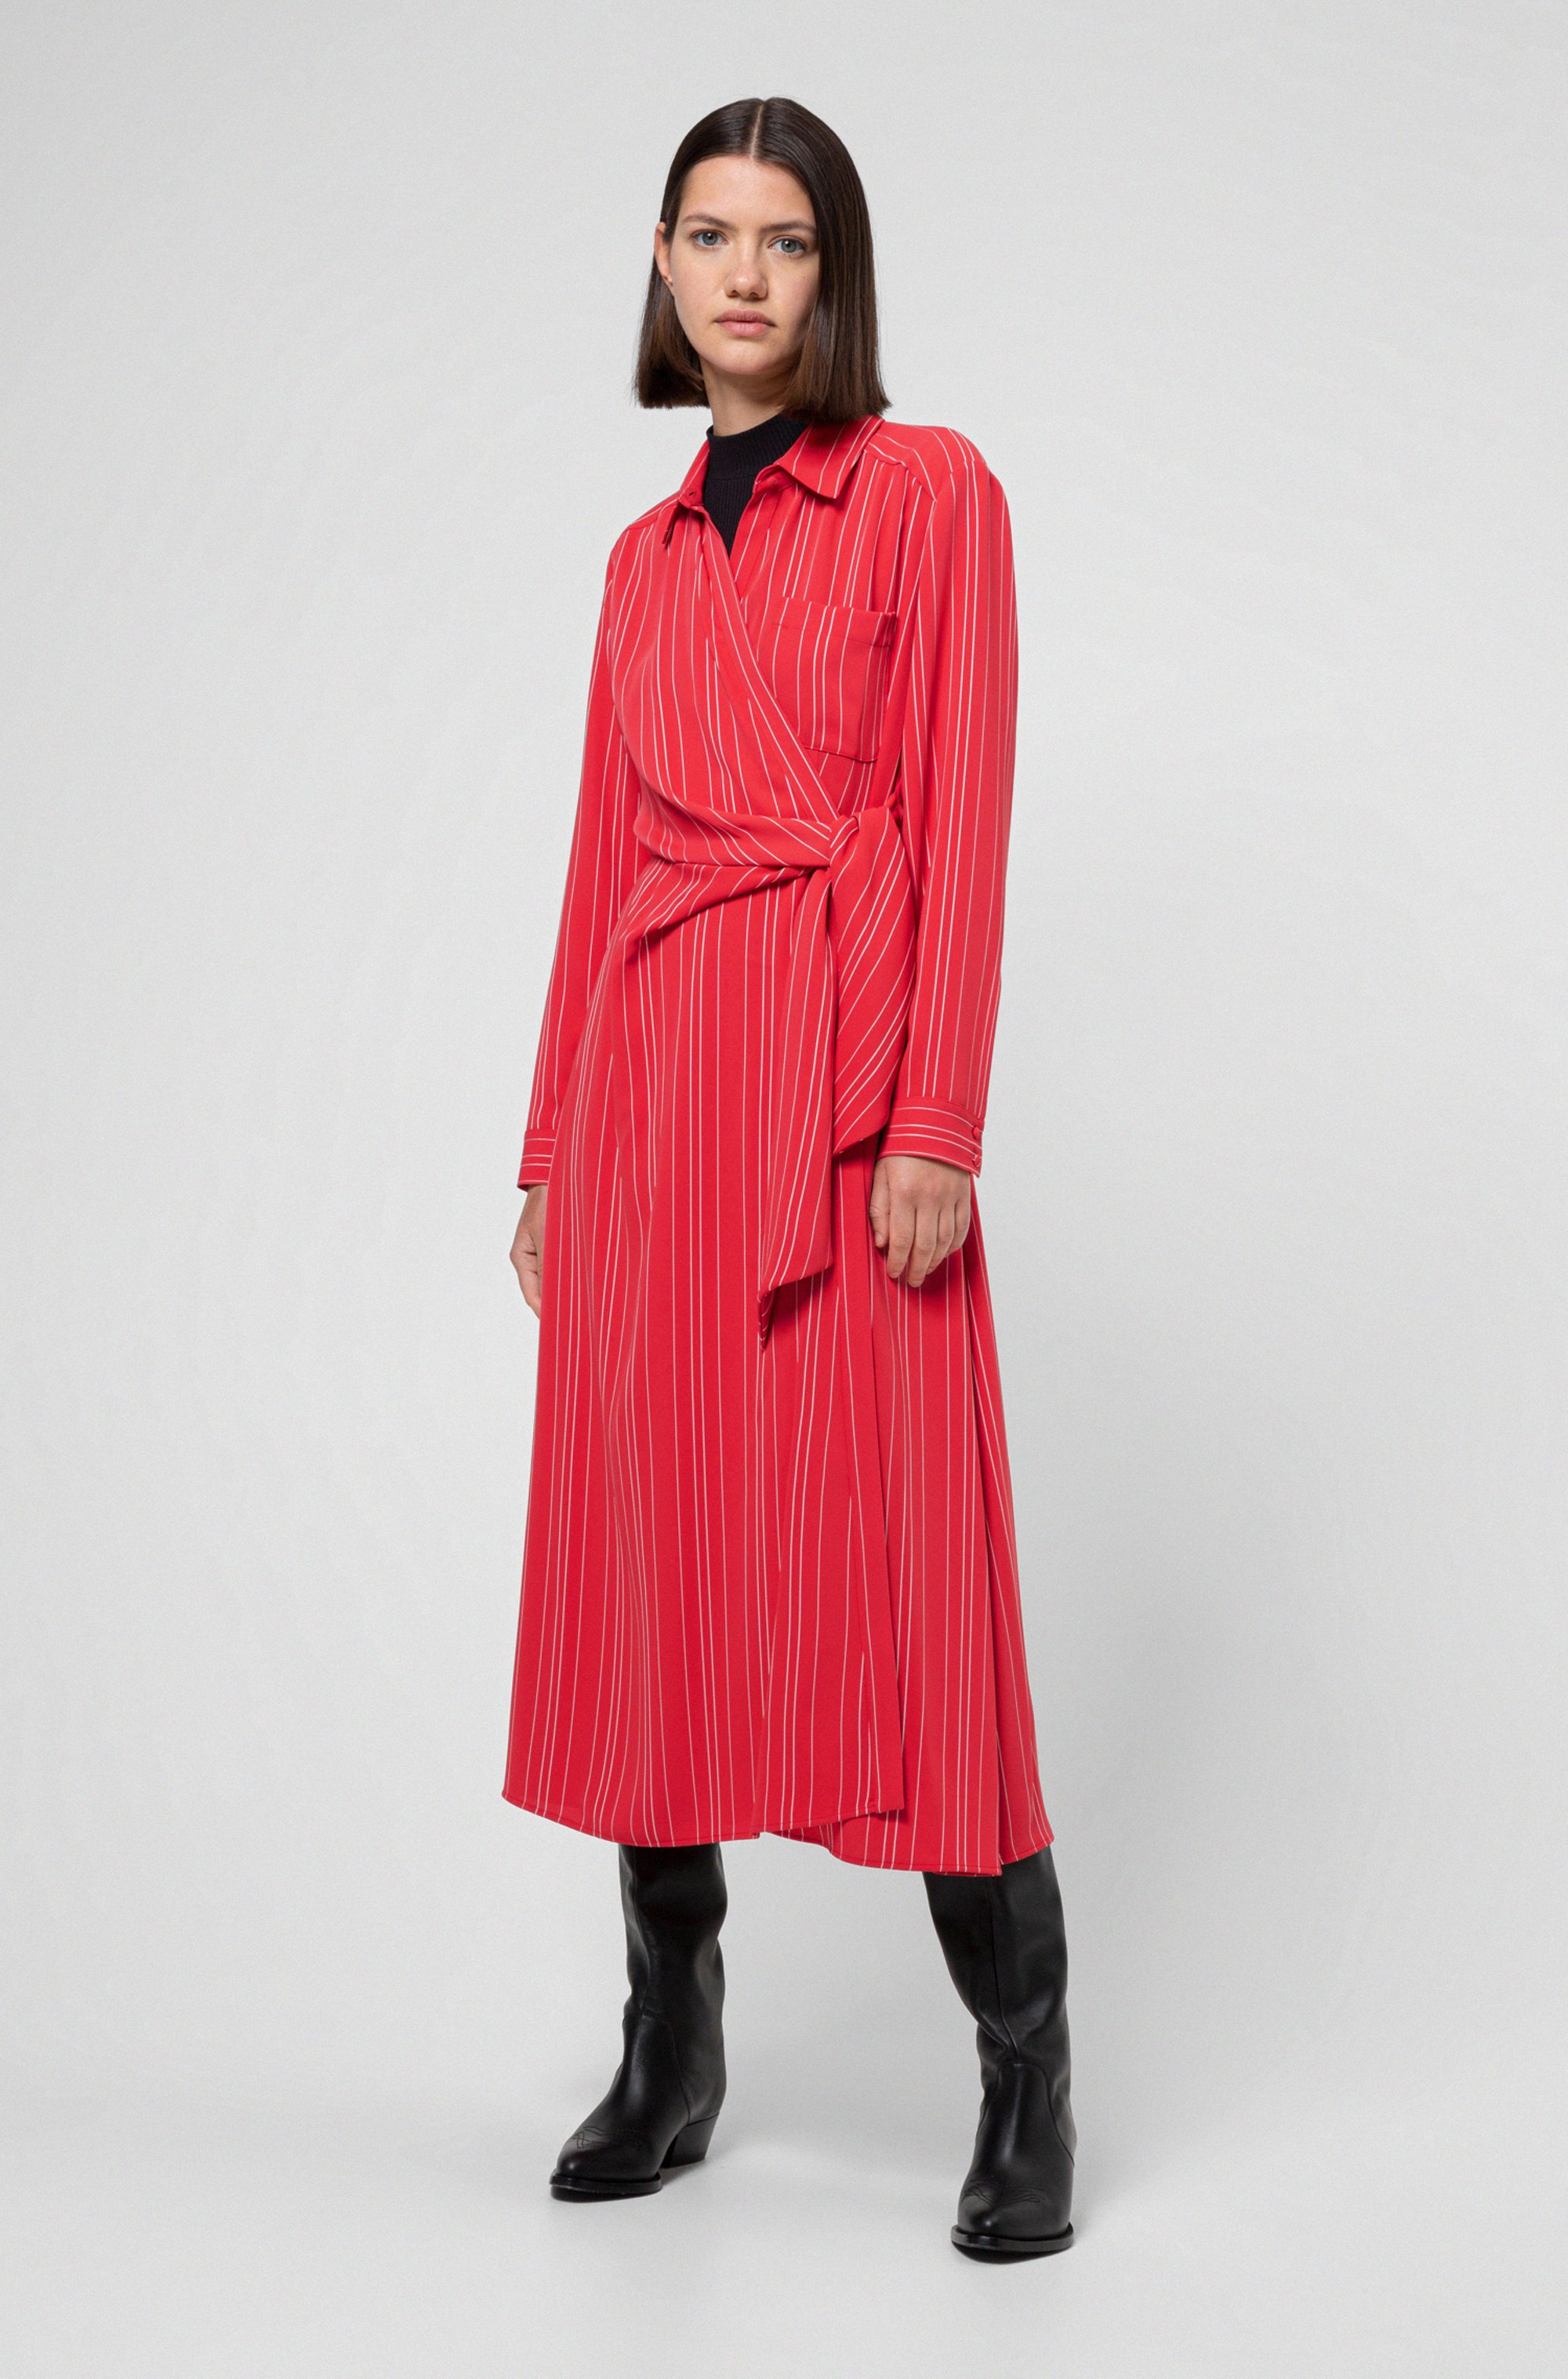 Robe-chemise portefeuille à rayures